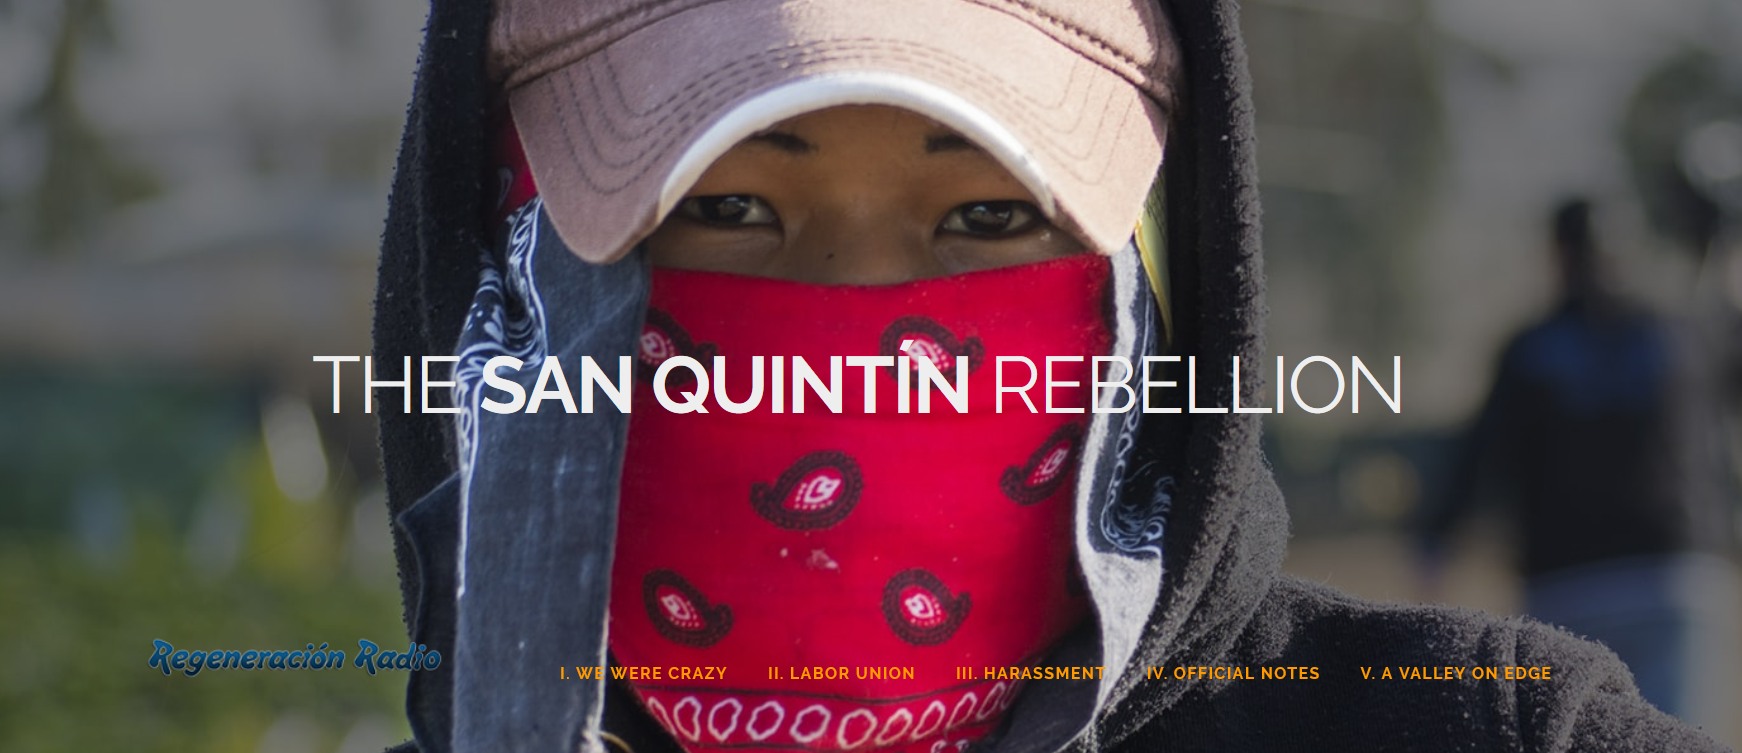 The San Quintín Rebellion